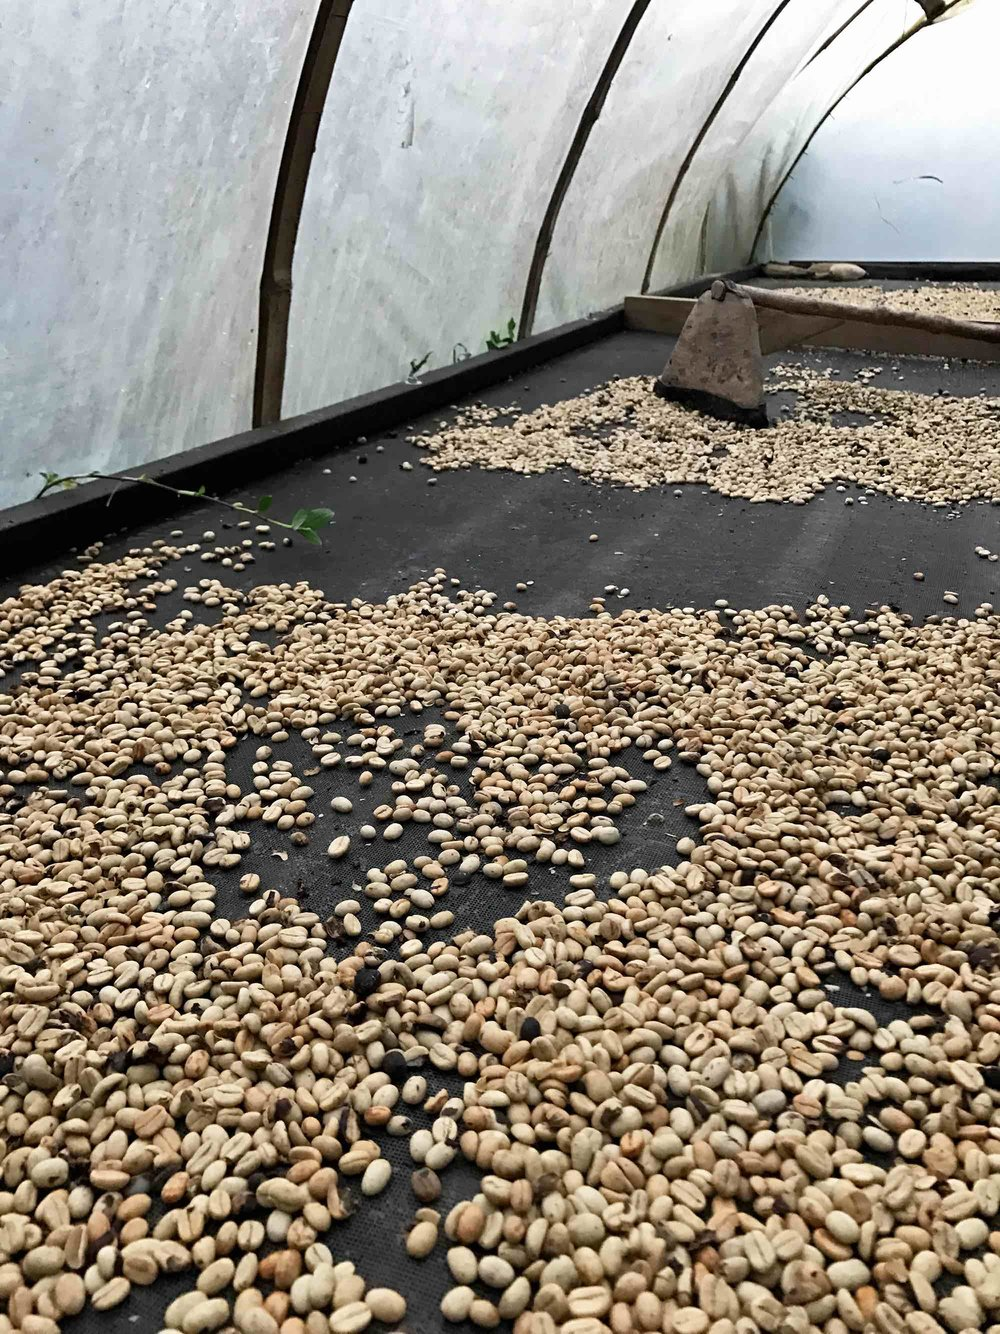 Drying coffee in the coffee region of Colombia